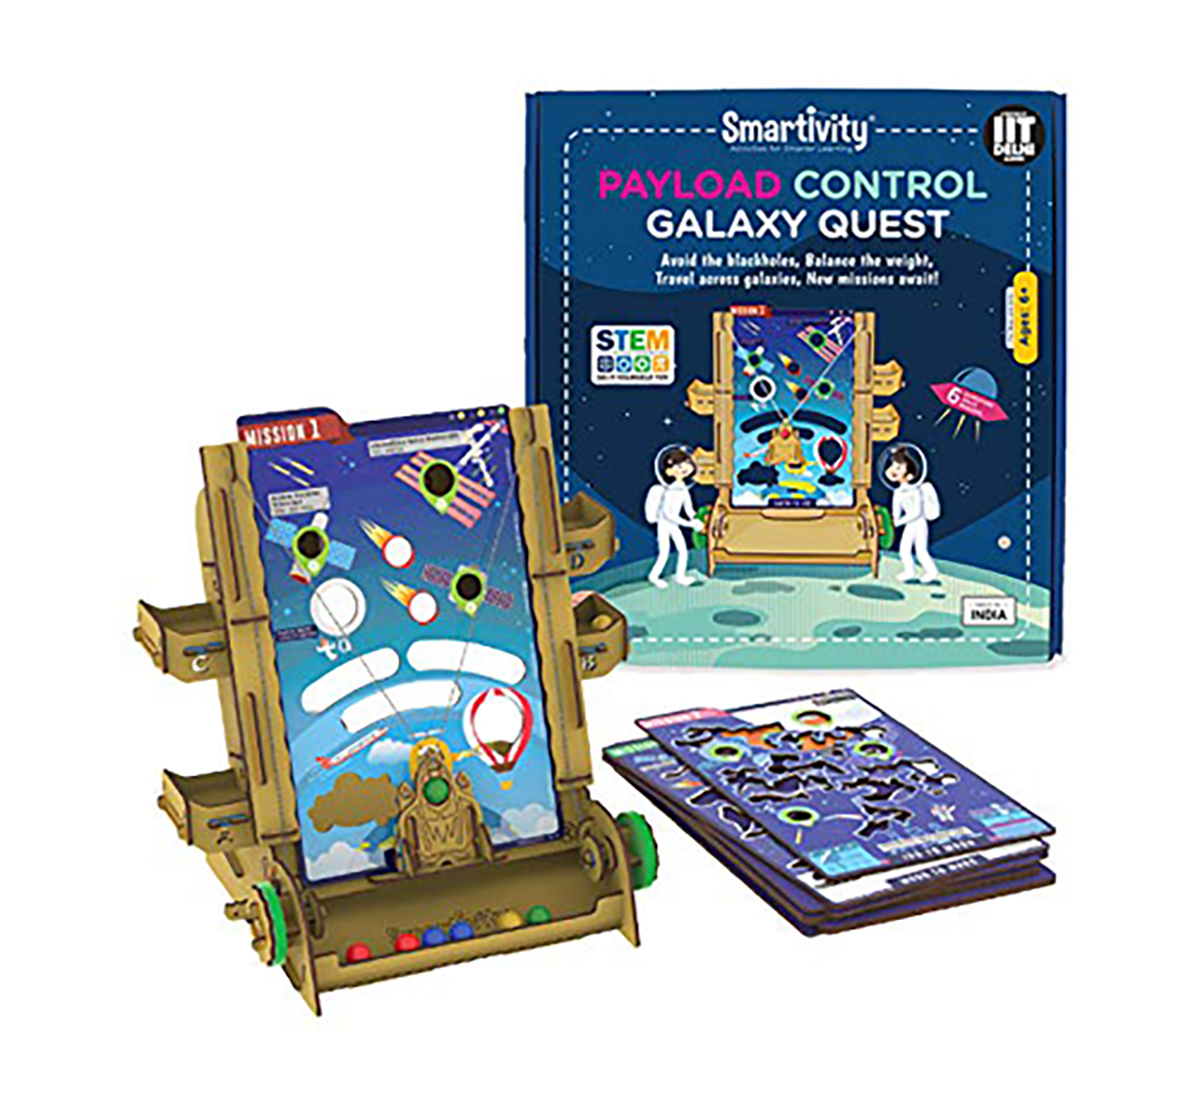 Smartivity | Smartivity Payload Control Galaxy Quest: Stem, Learning, Educational and Construction Activity Toy Gift  for Kids age 6Y+ (Multi-Color)